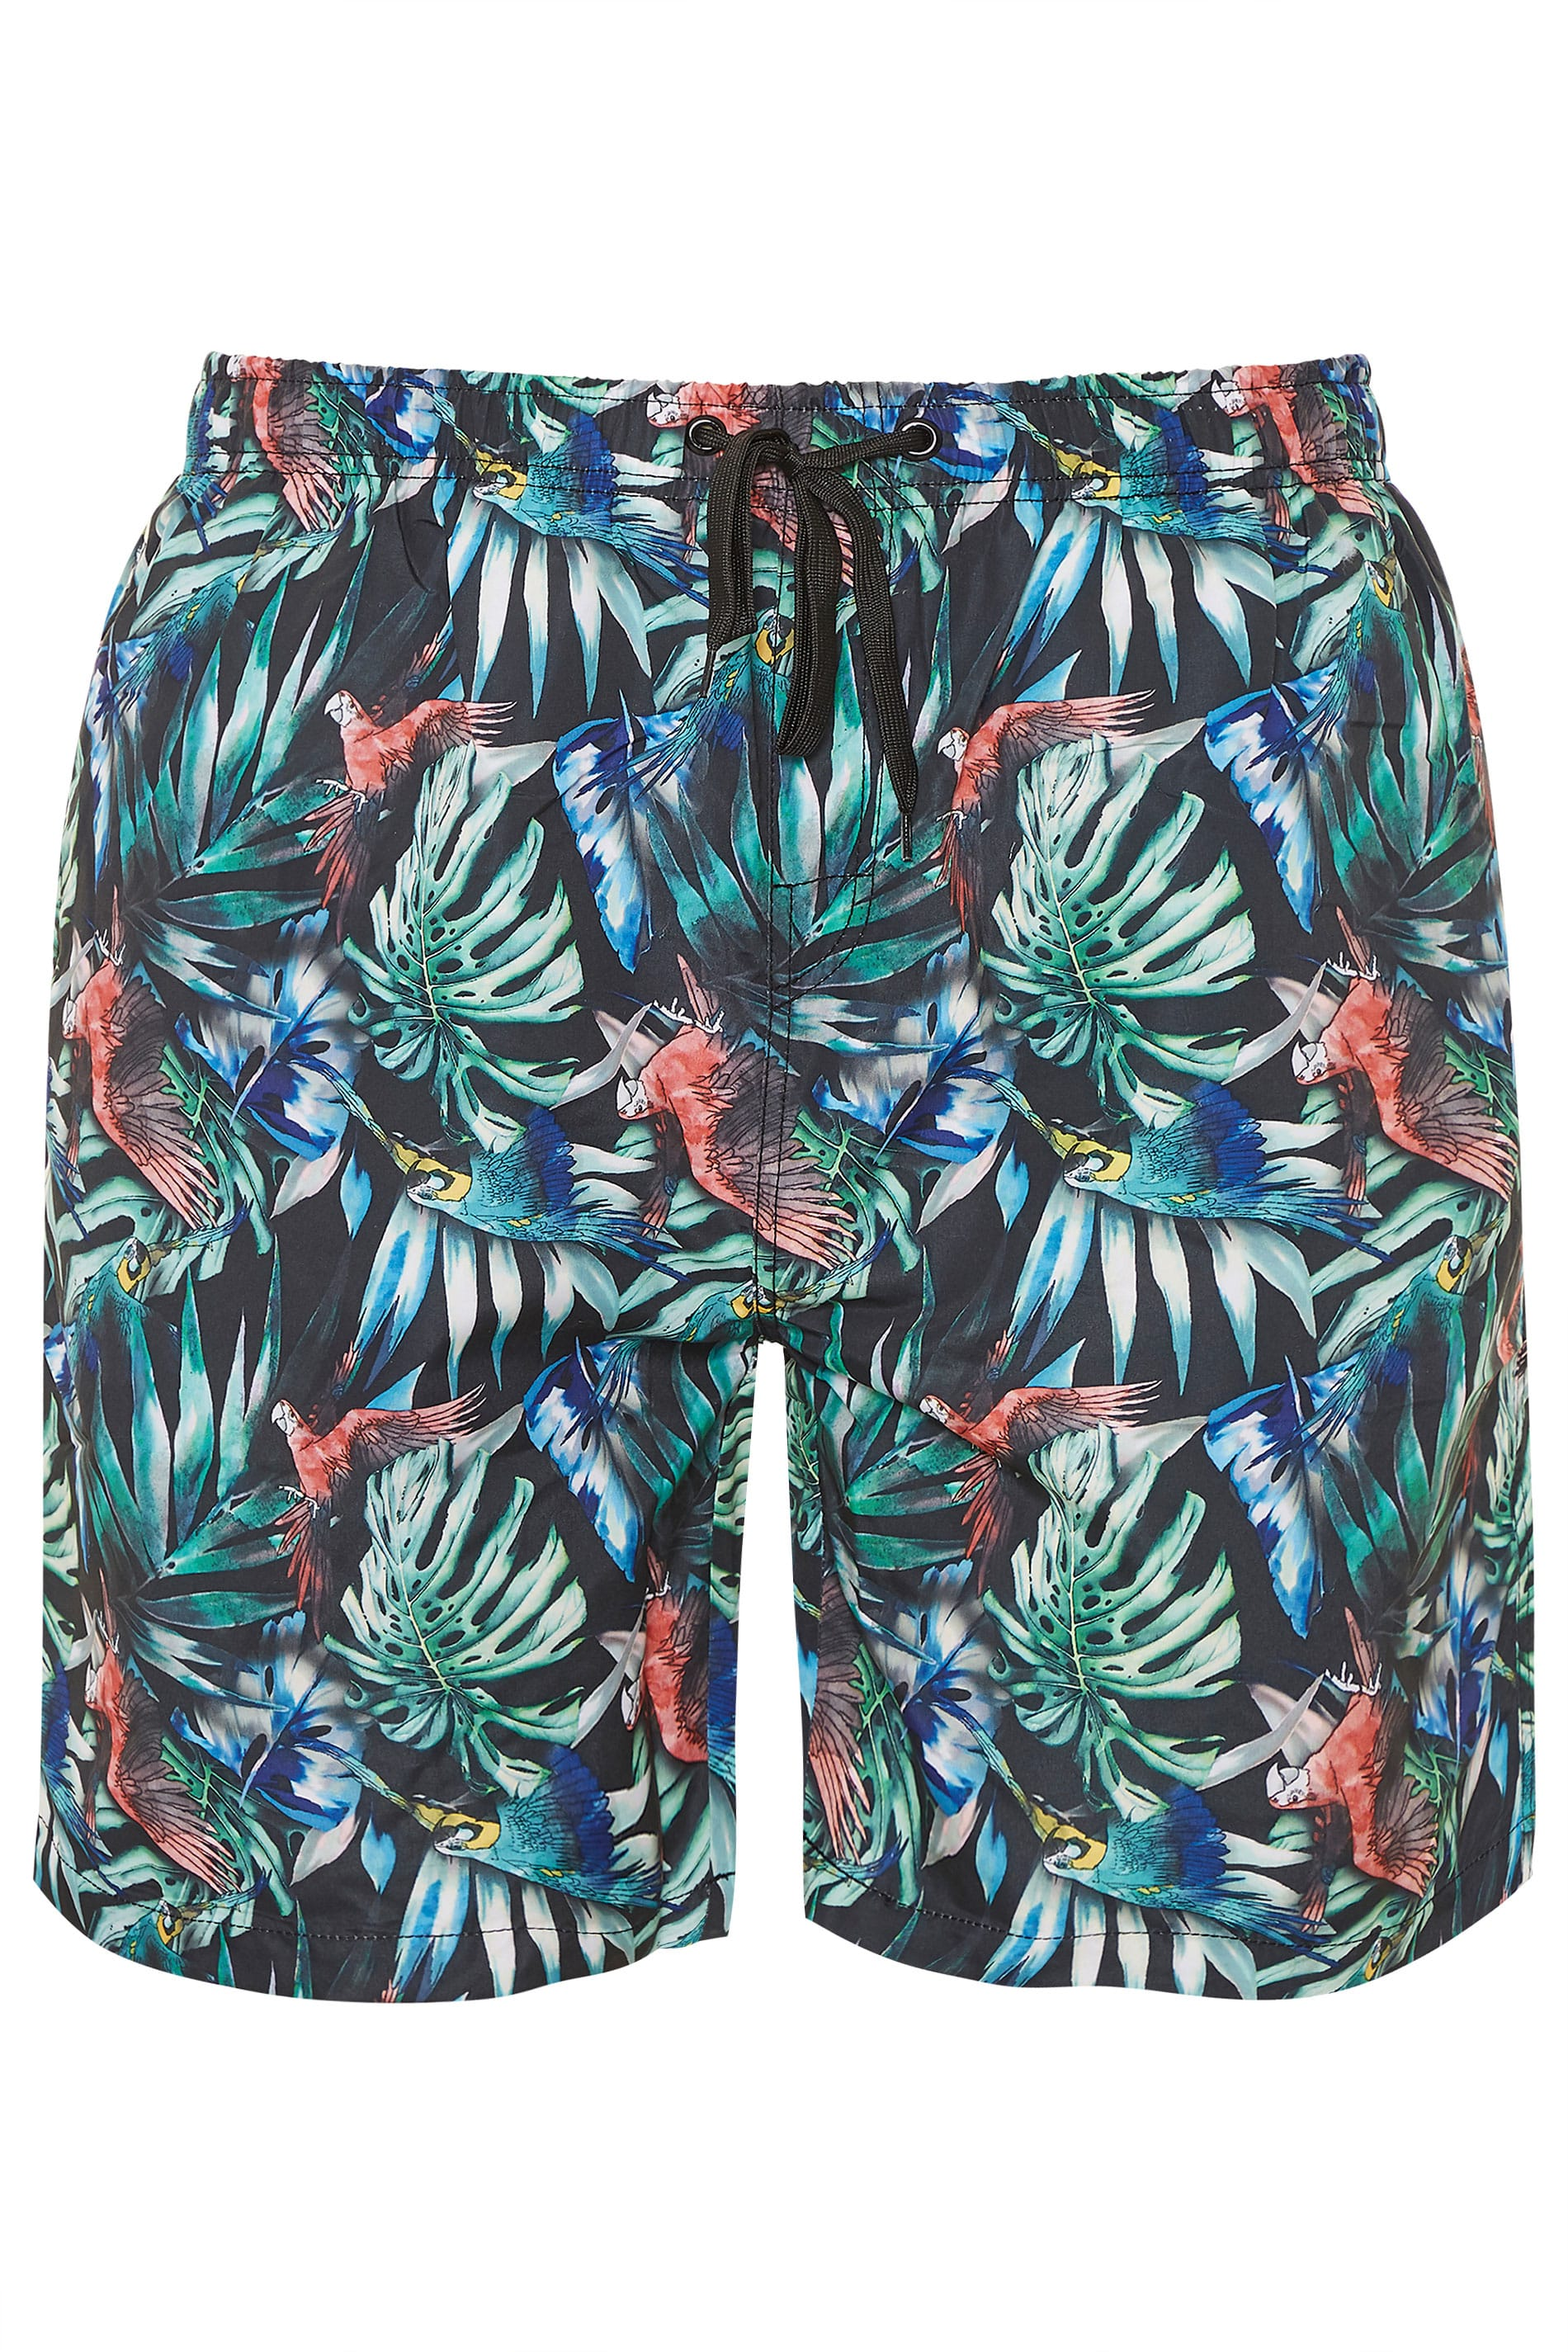 ED BAXTER Multi Tropical Print Swim Shorts